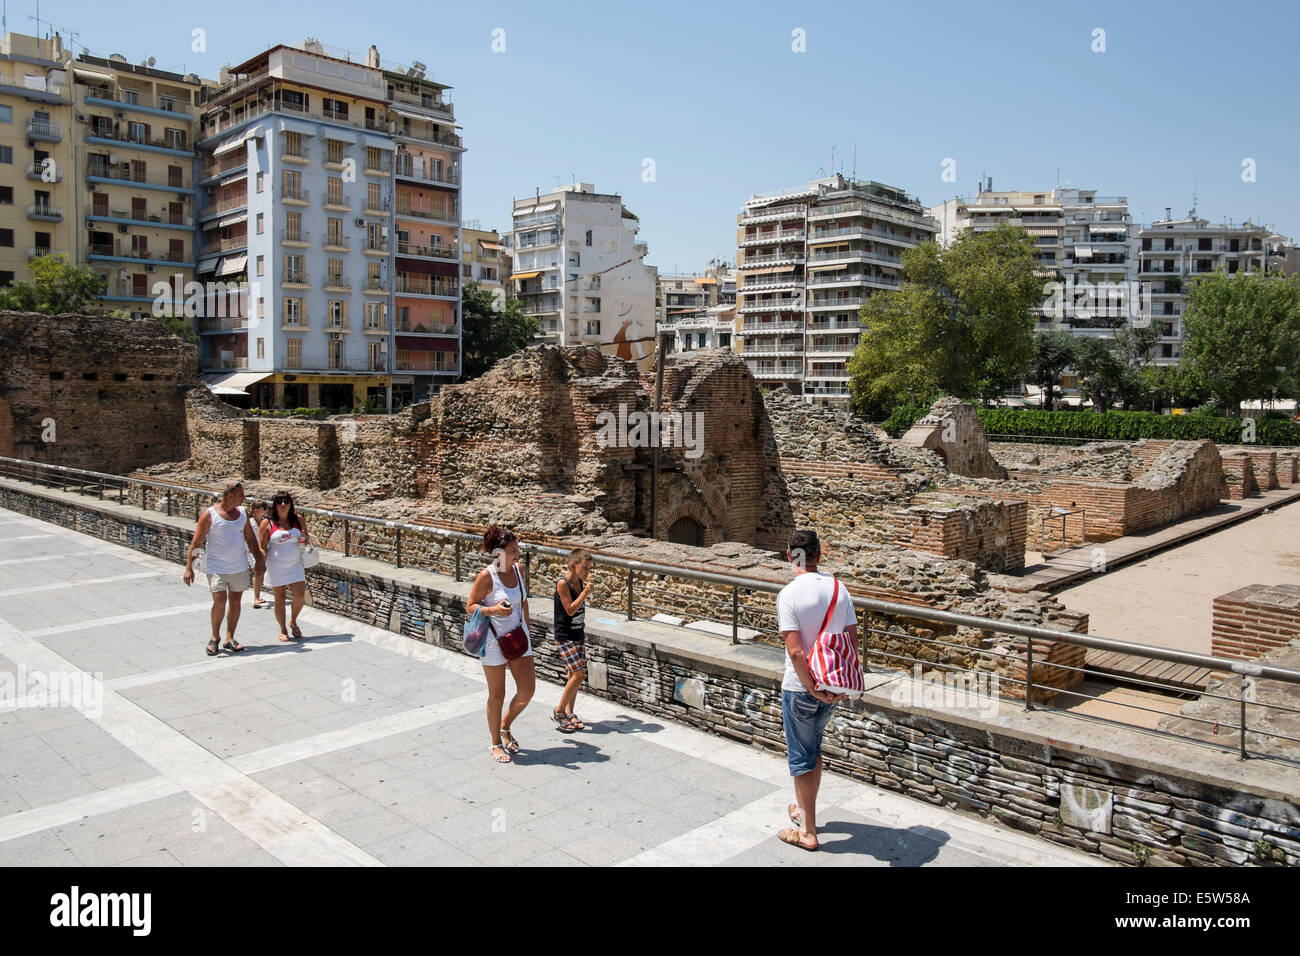 Tourists at Navarinou square in Thessaloniki, Greece on August 2014. - Stock Image